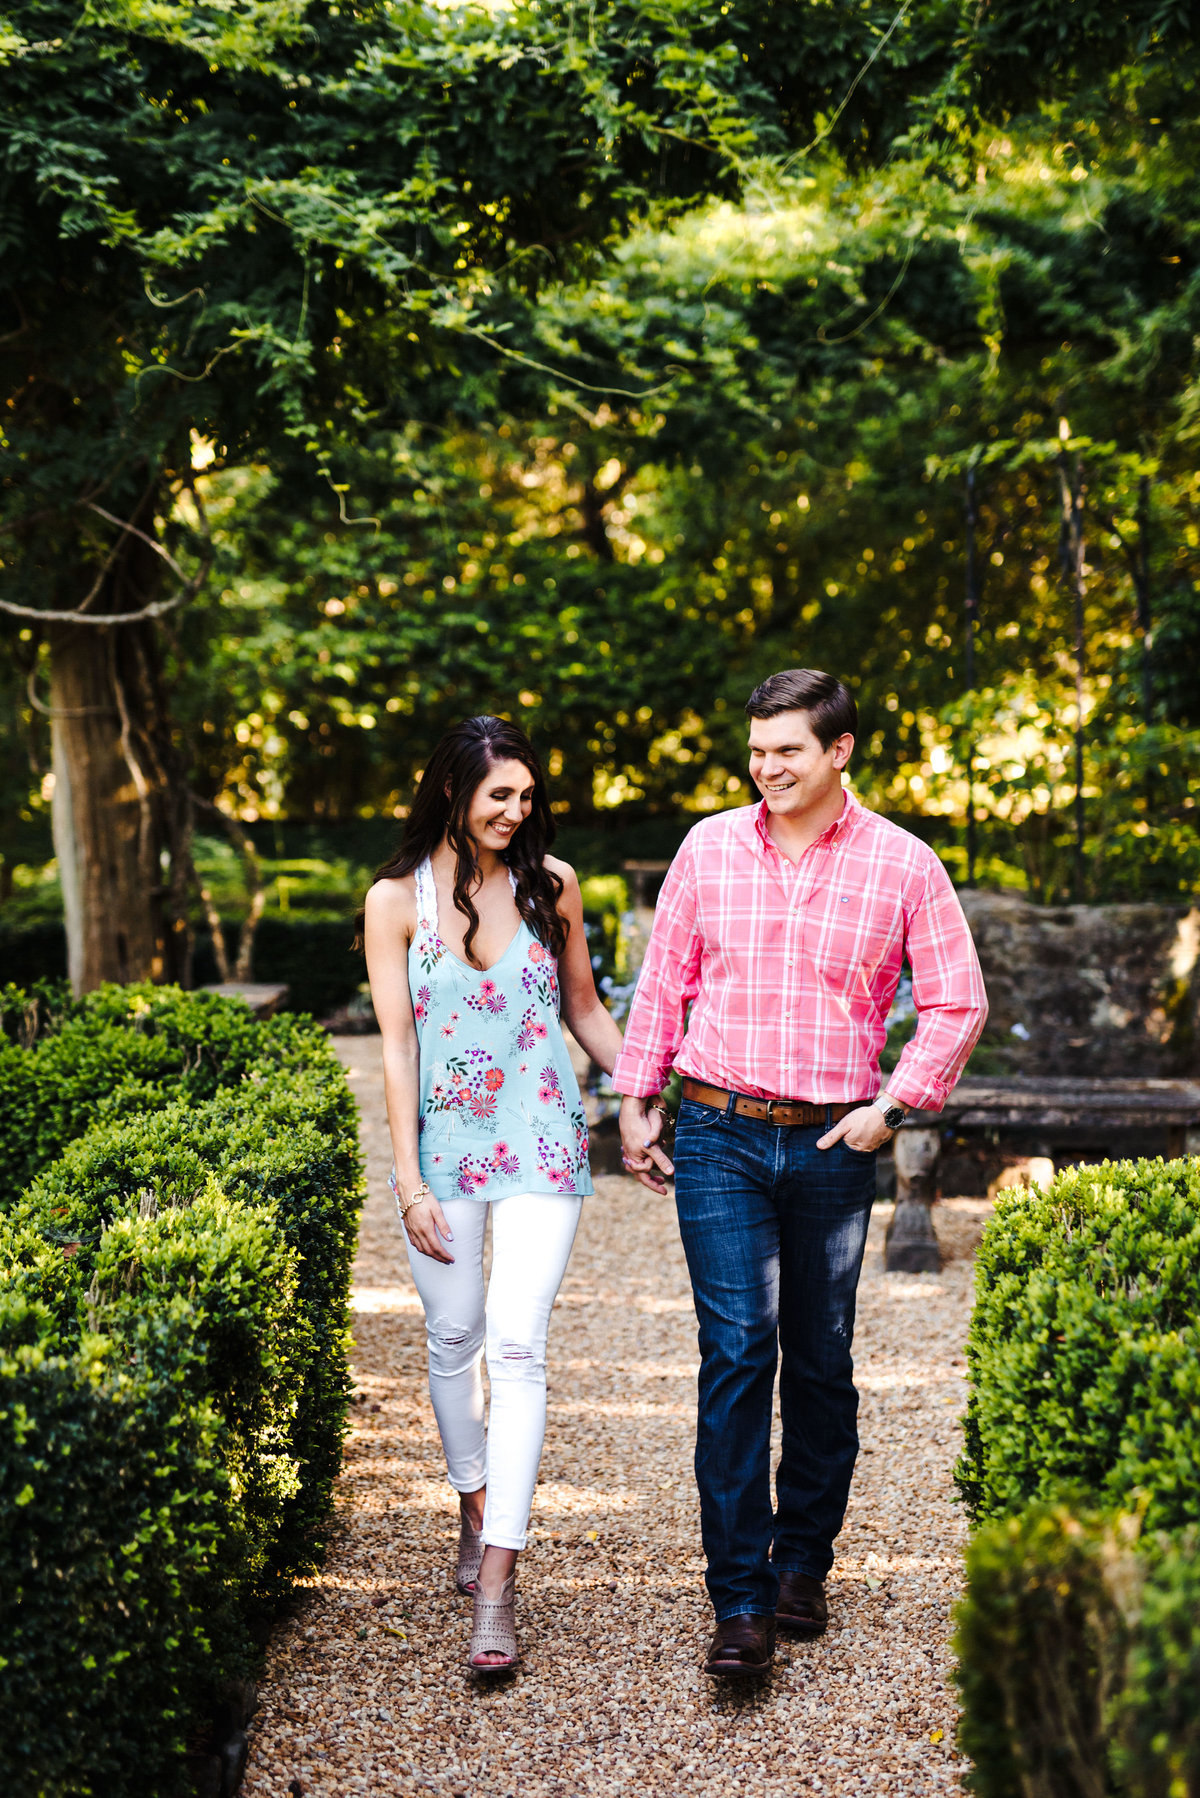 Hills and Dales Estate Engagement Session - 8